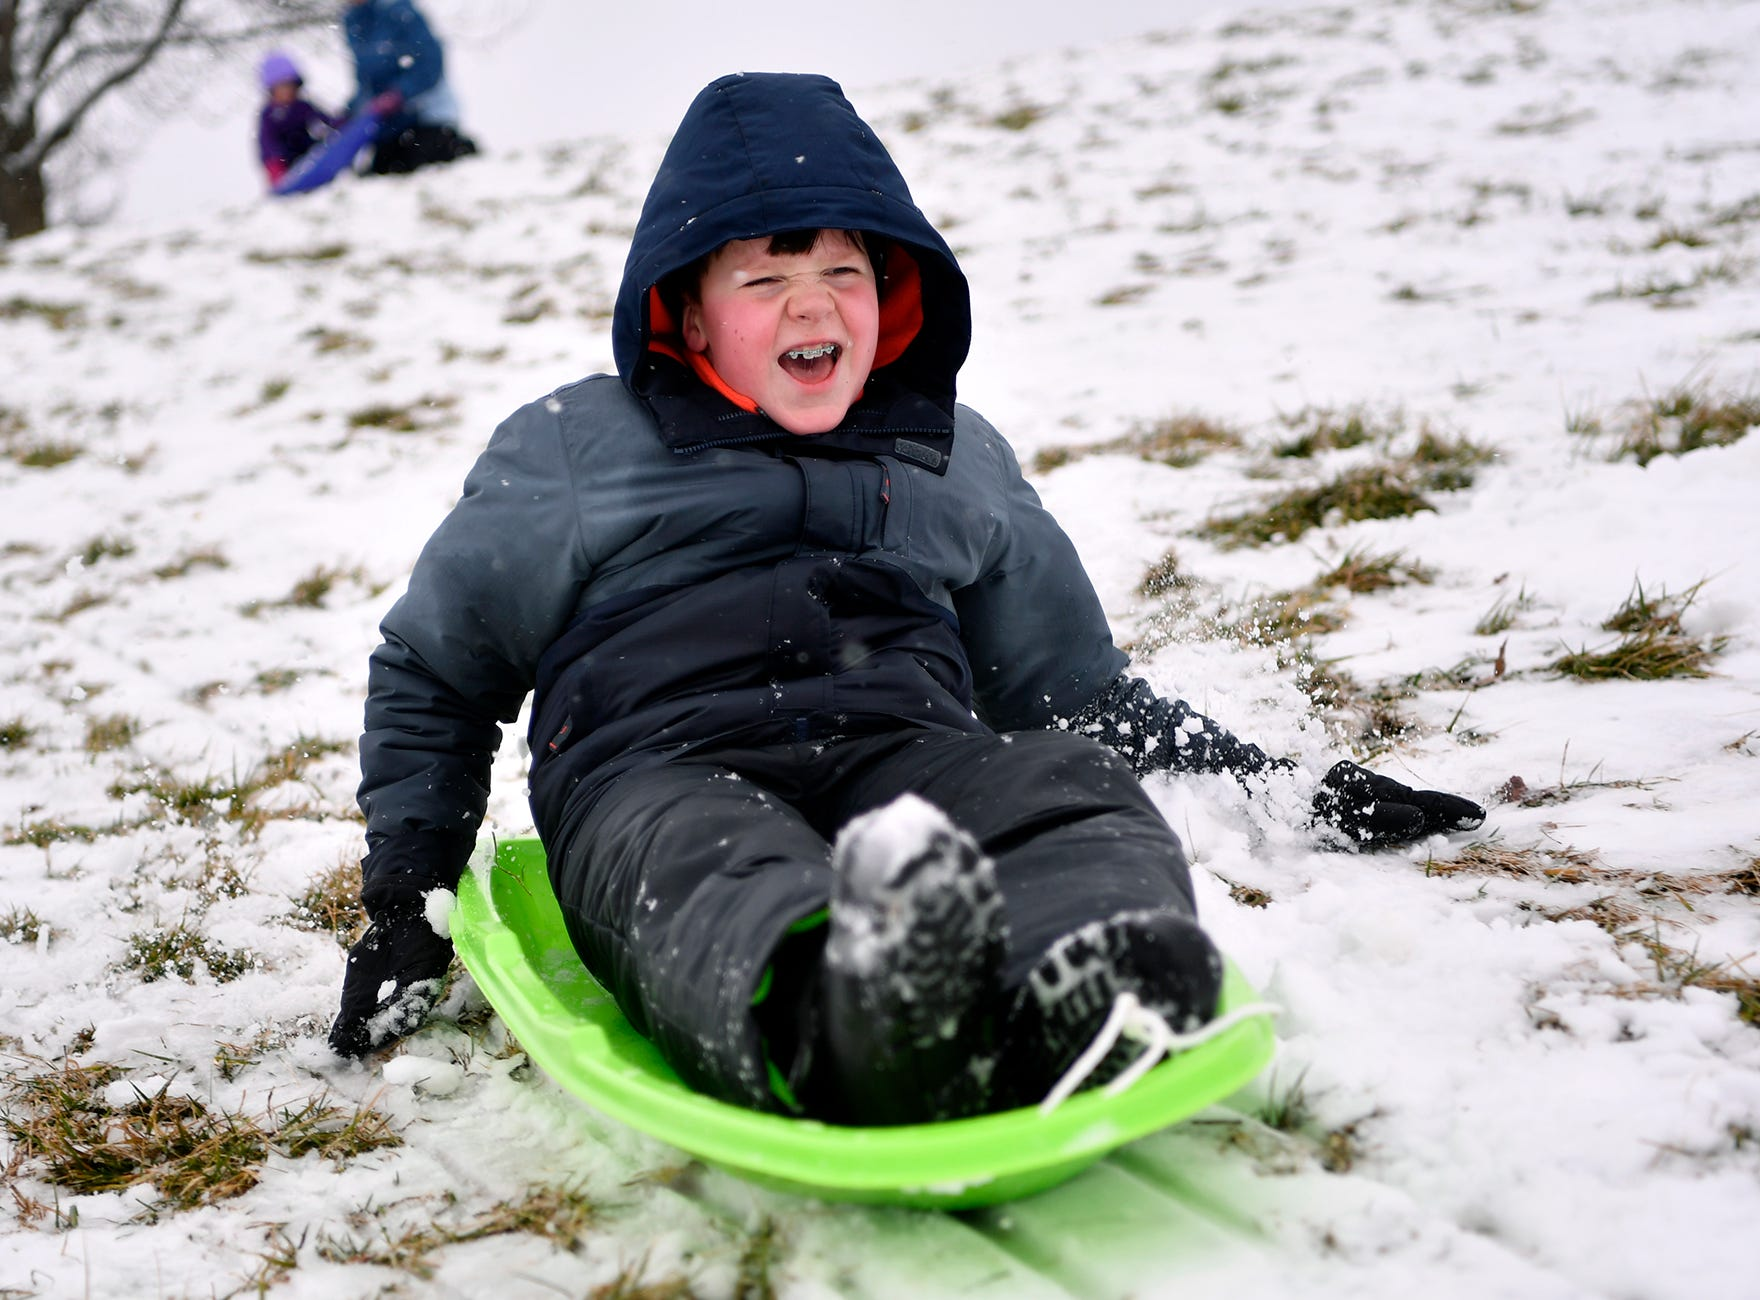 Zachary Shiffer, 11, zips down the hill while sledding with his family at Springettsbury Park, Monday, February 11, 2019.John A. Pavoncello photo